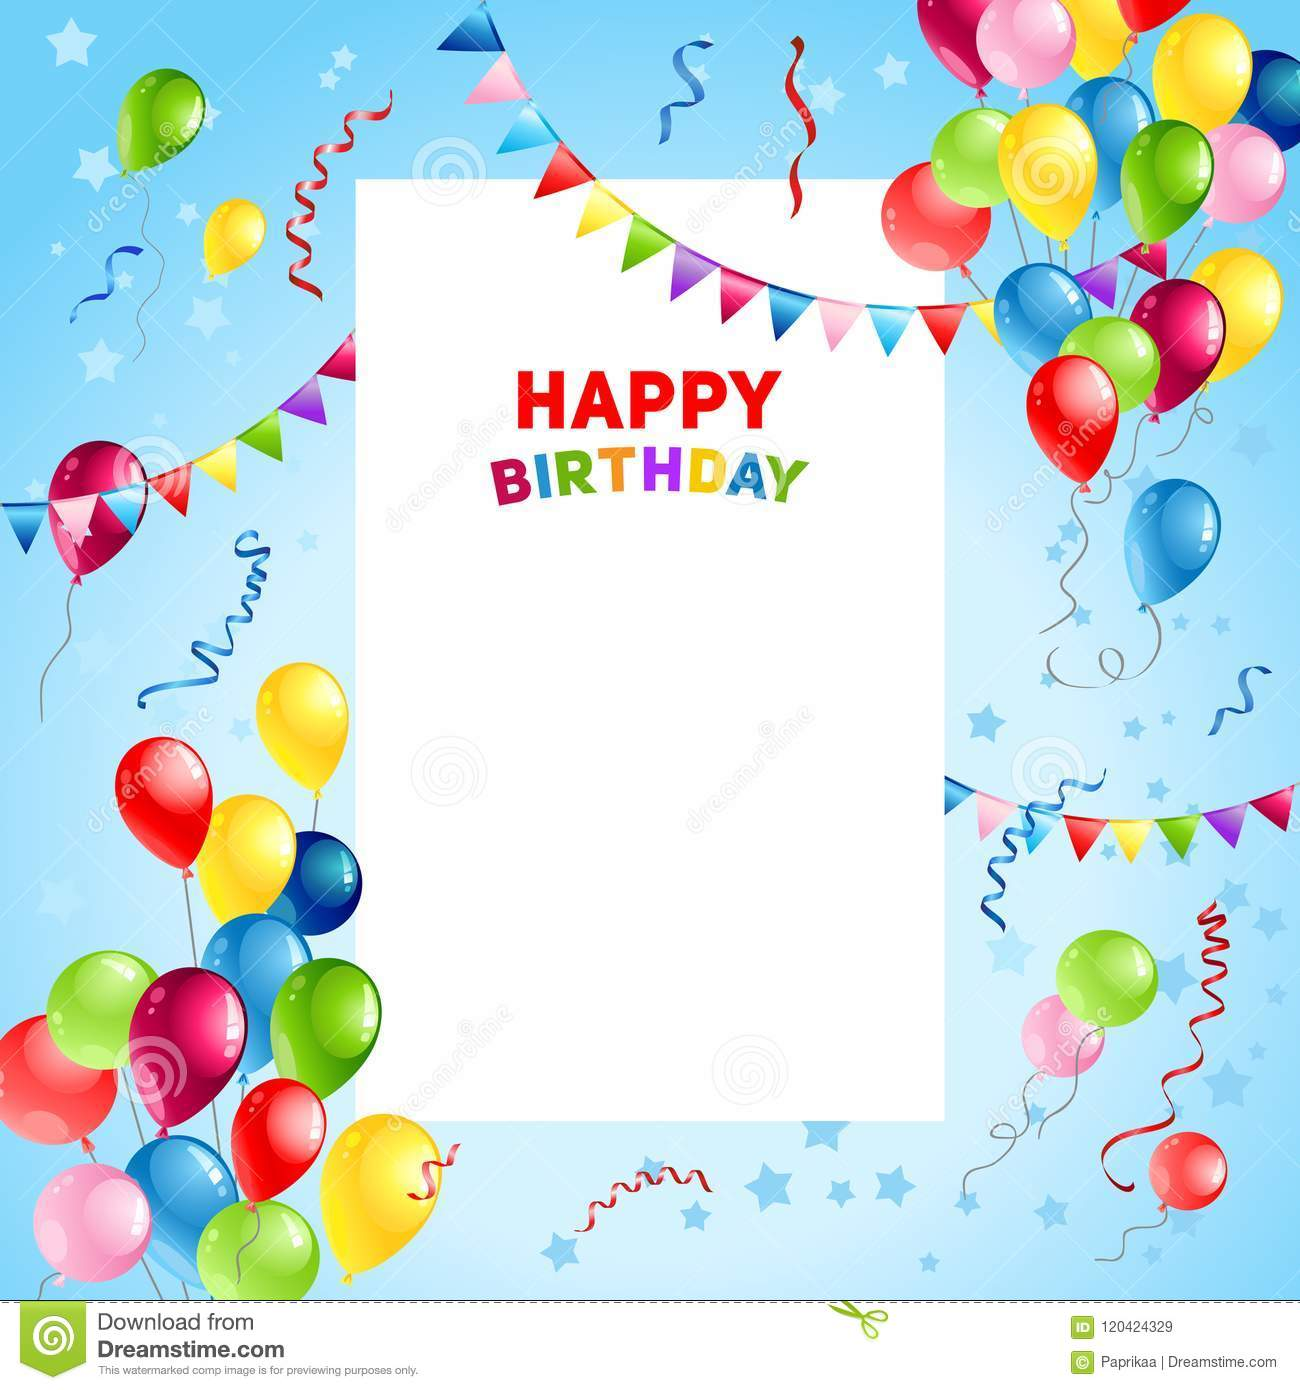 Balloons Happy Birthday Card Template Stock Vector